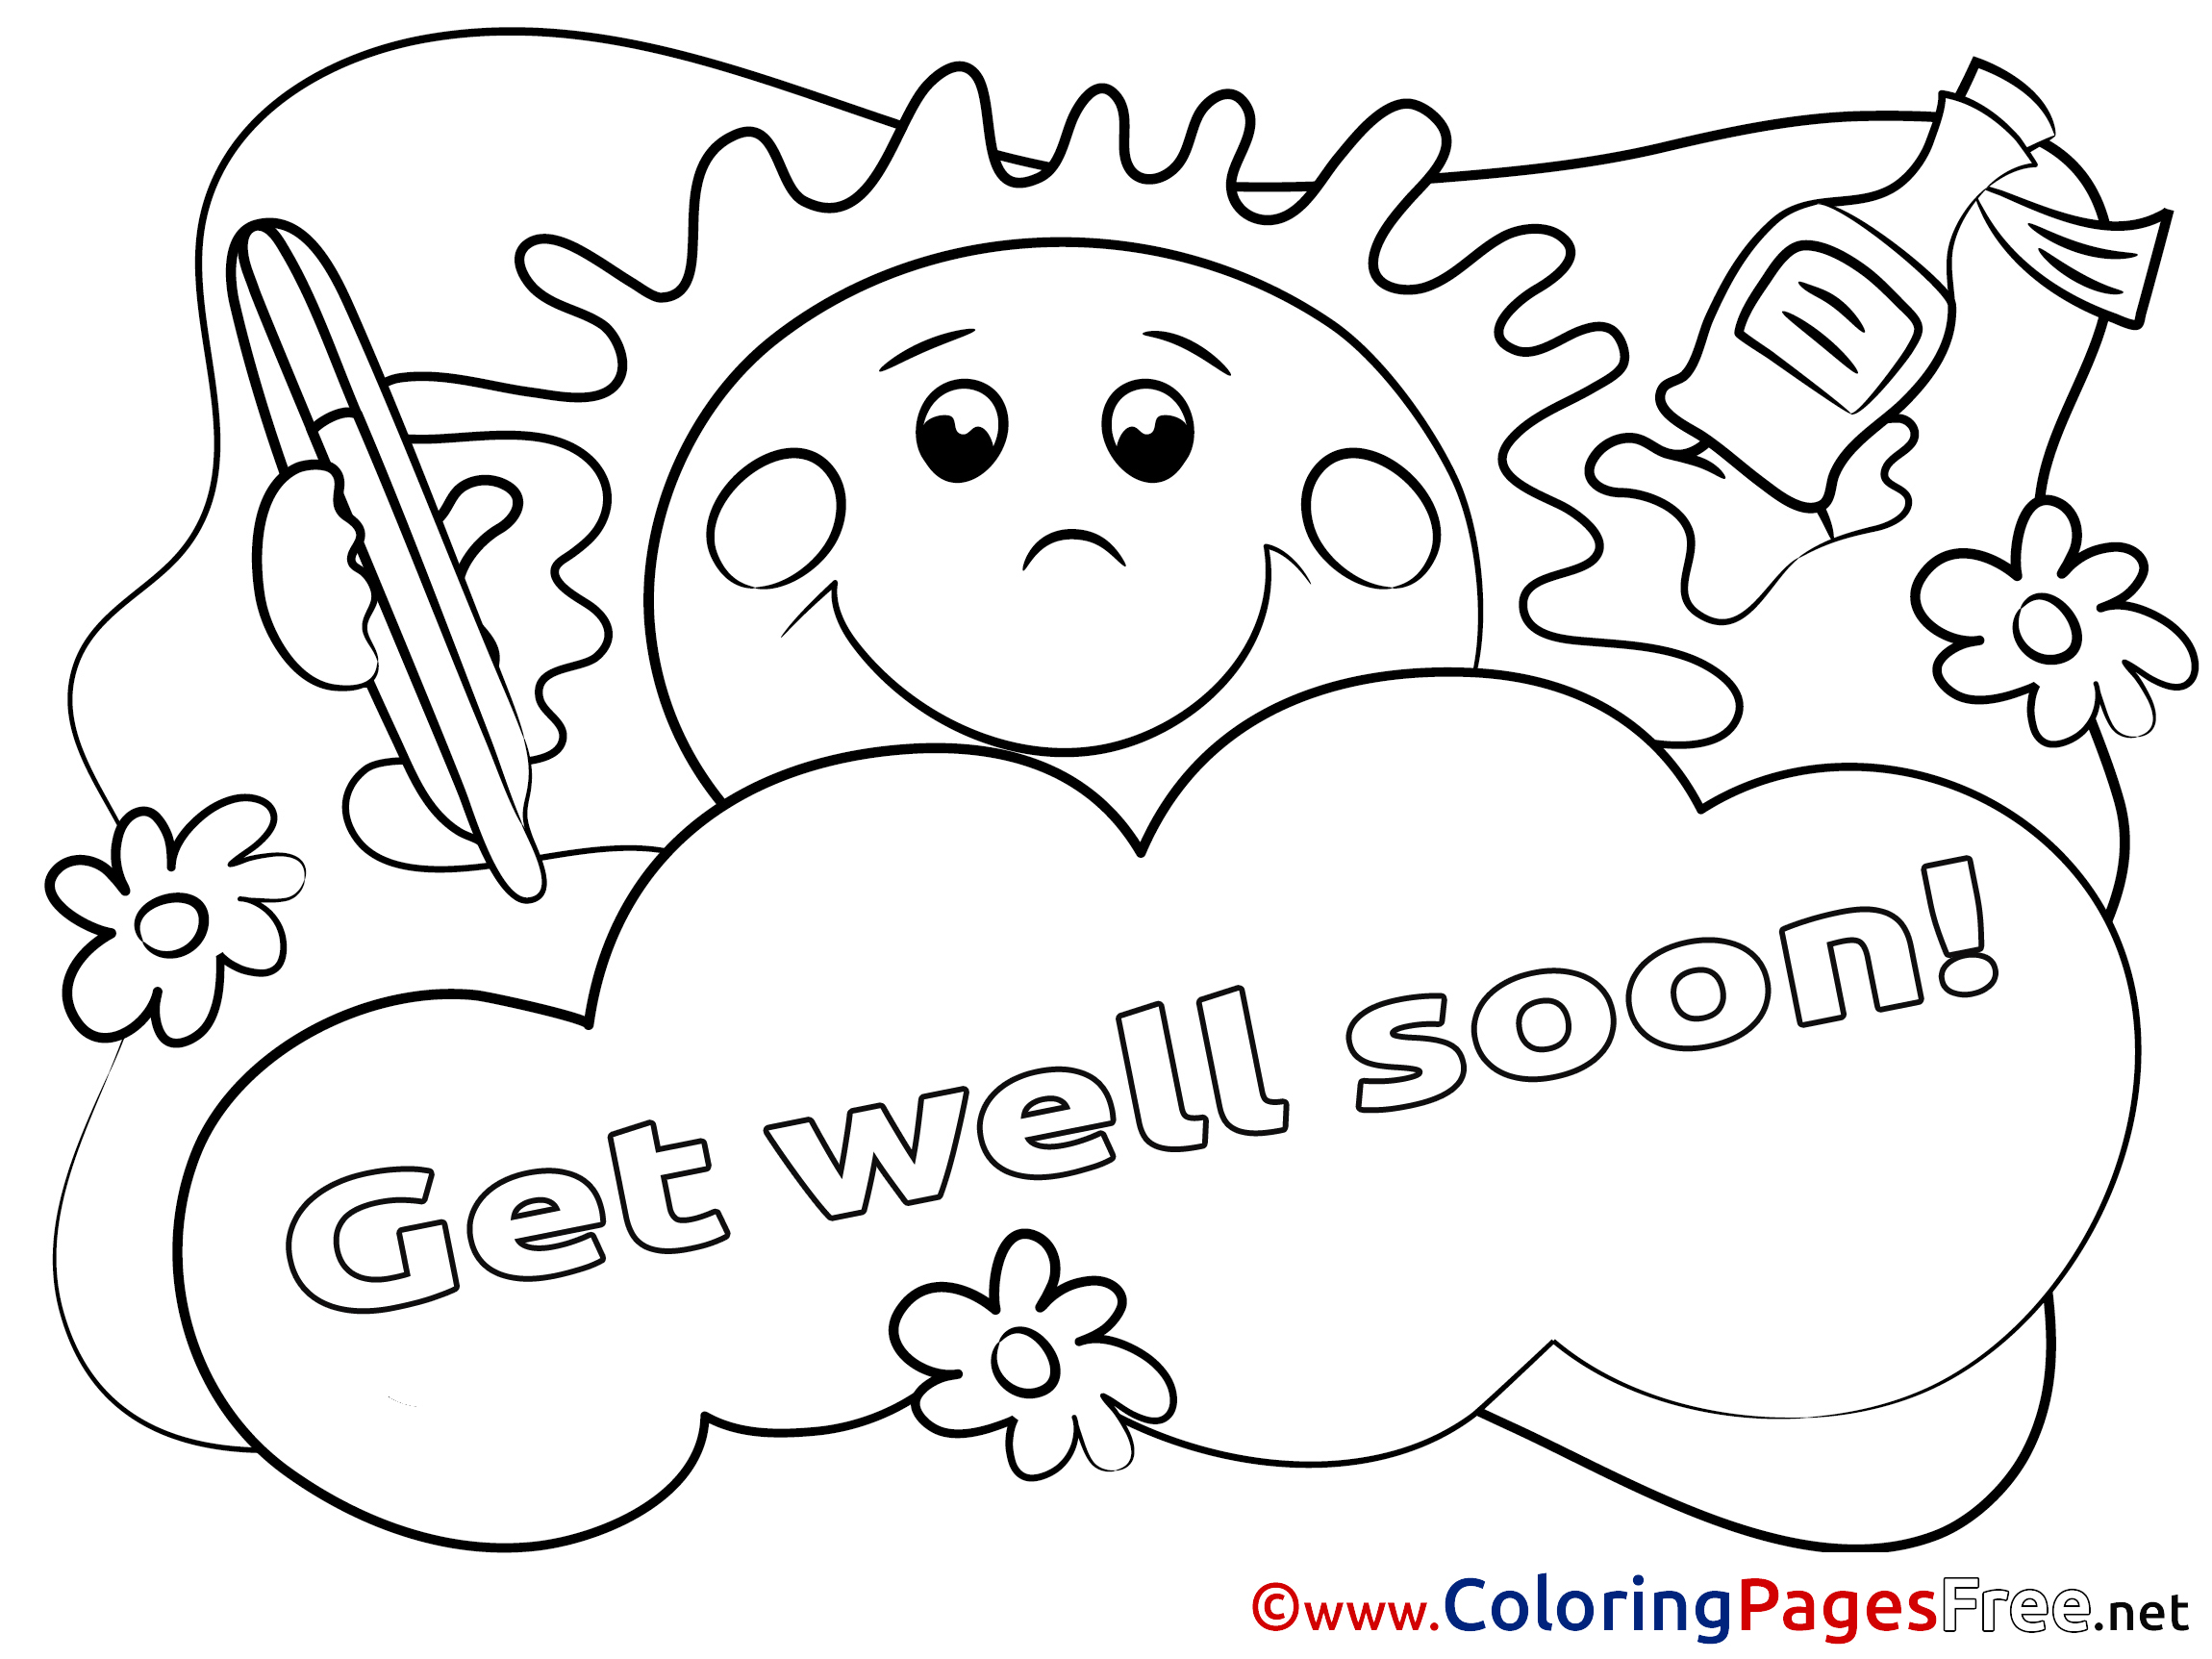 Sun for kids get well soon colouring page for Get well soon card coloring pages